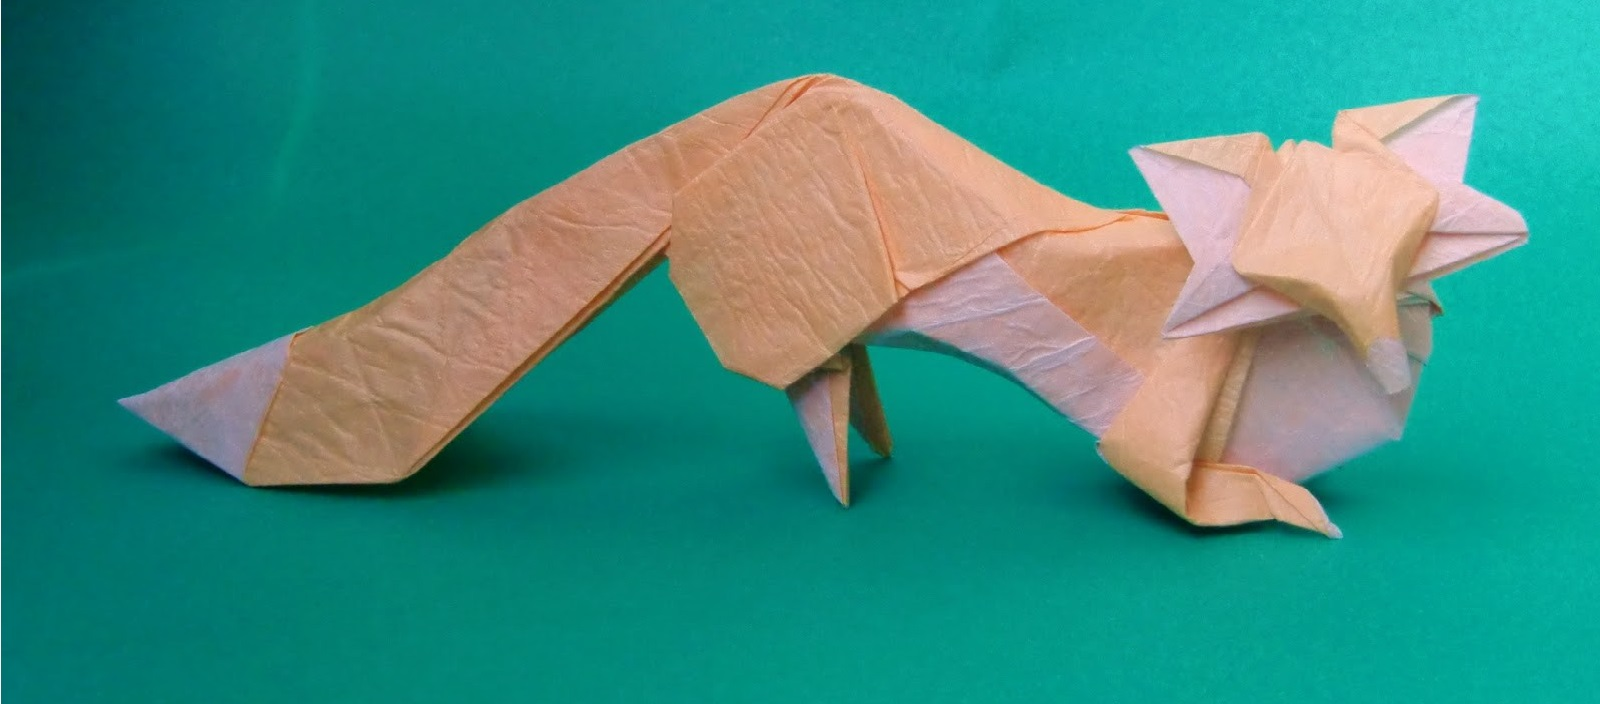 Origami and its cultural influences nihonden origami and its cultural influences jeuxipadfo Image collections